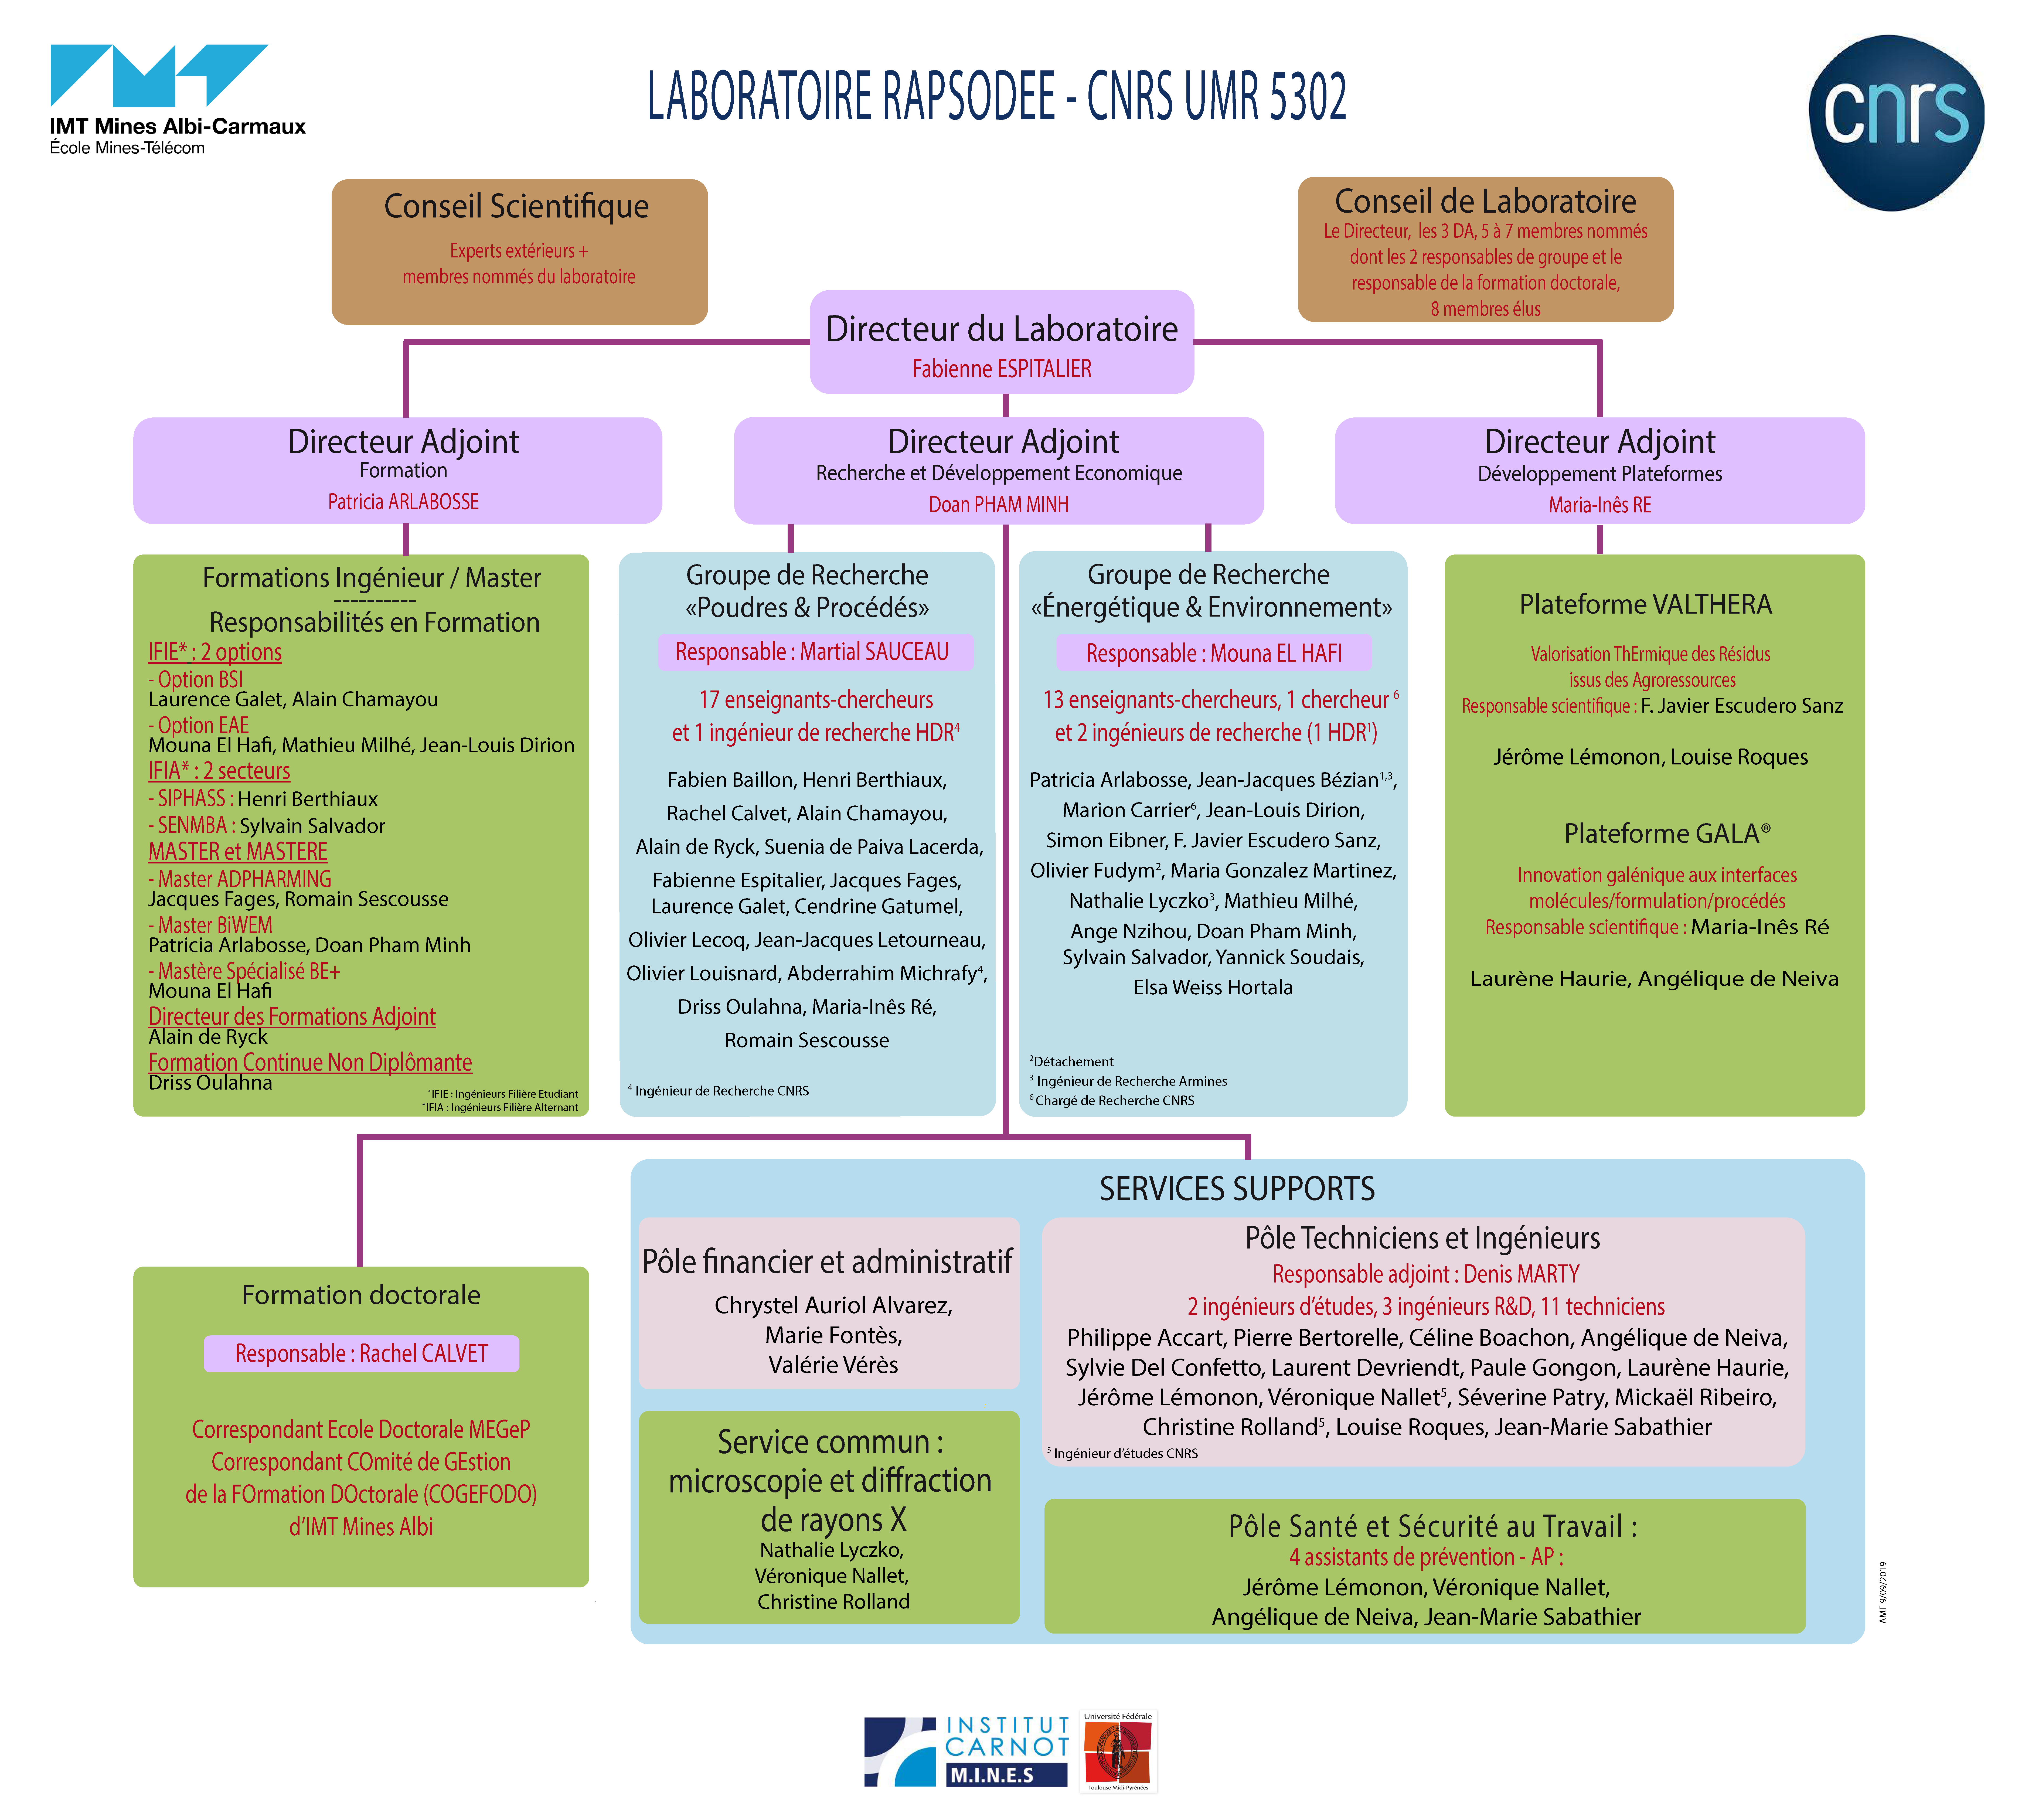 organigramme2019-cible-09-09-compressed.png